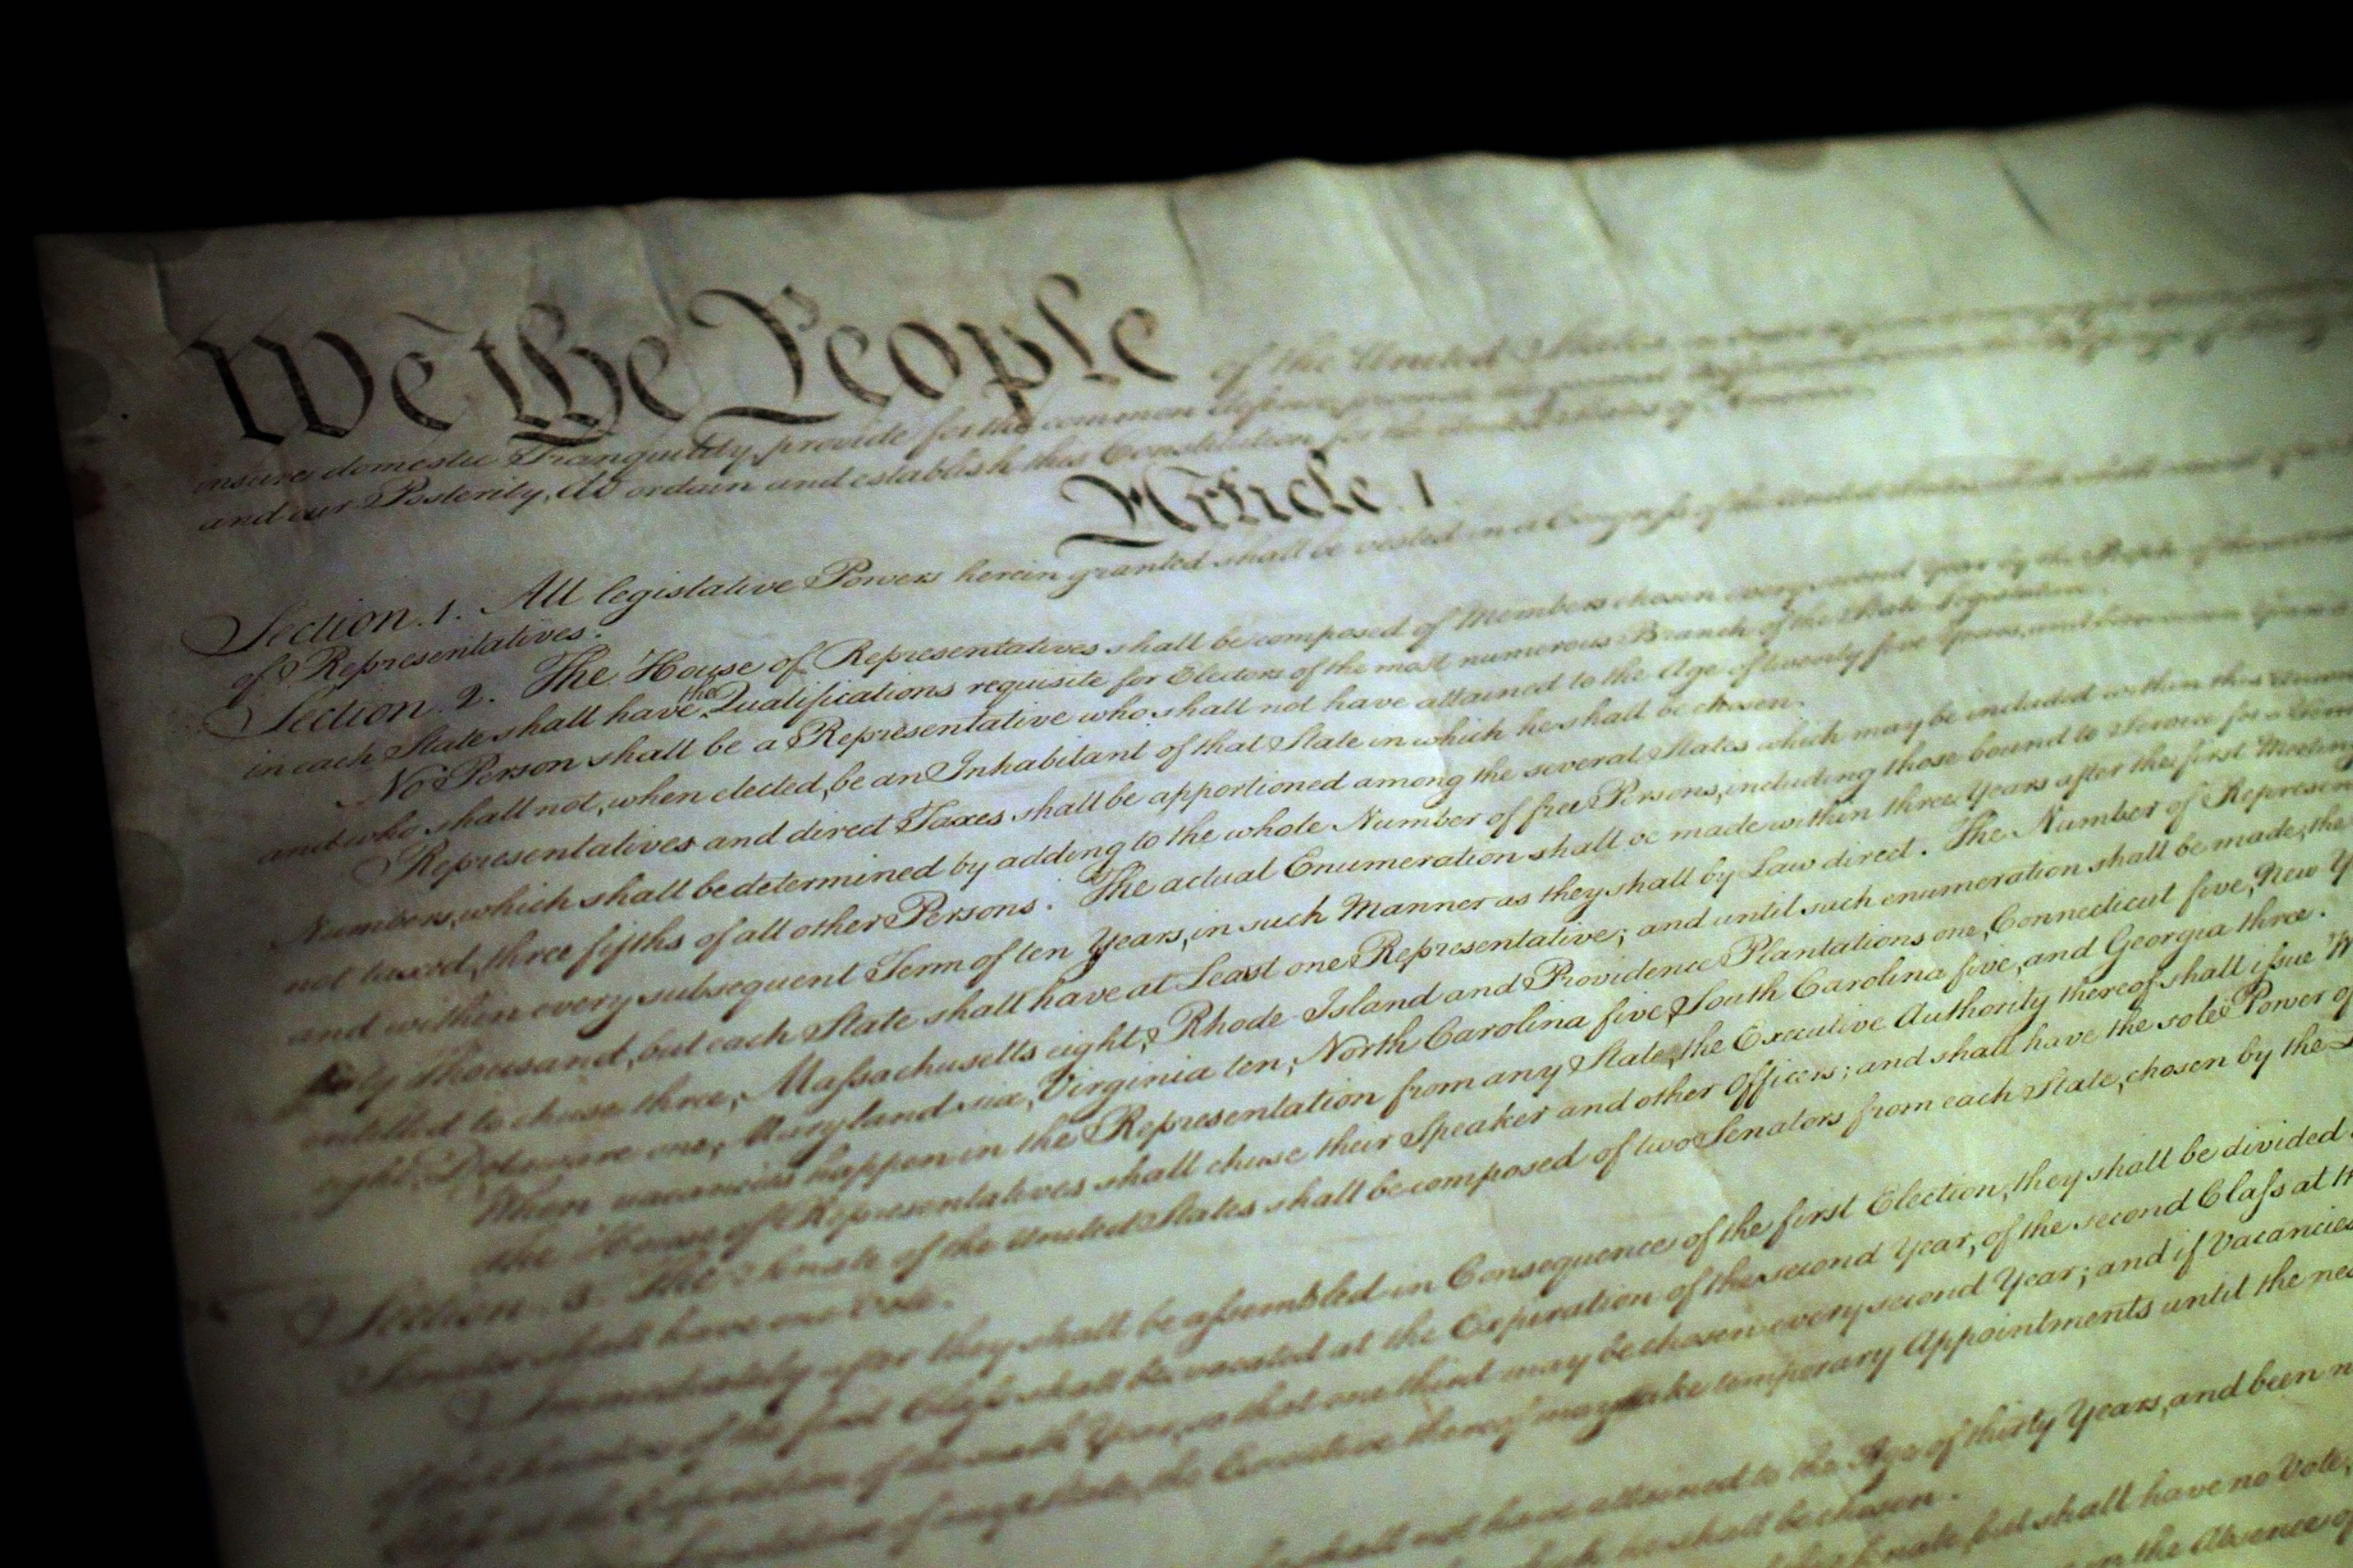 write my argumentative essay on founding fathers